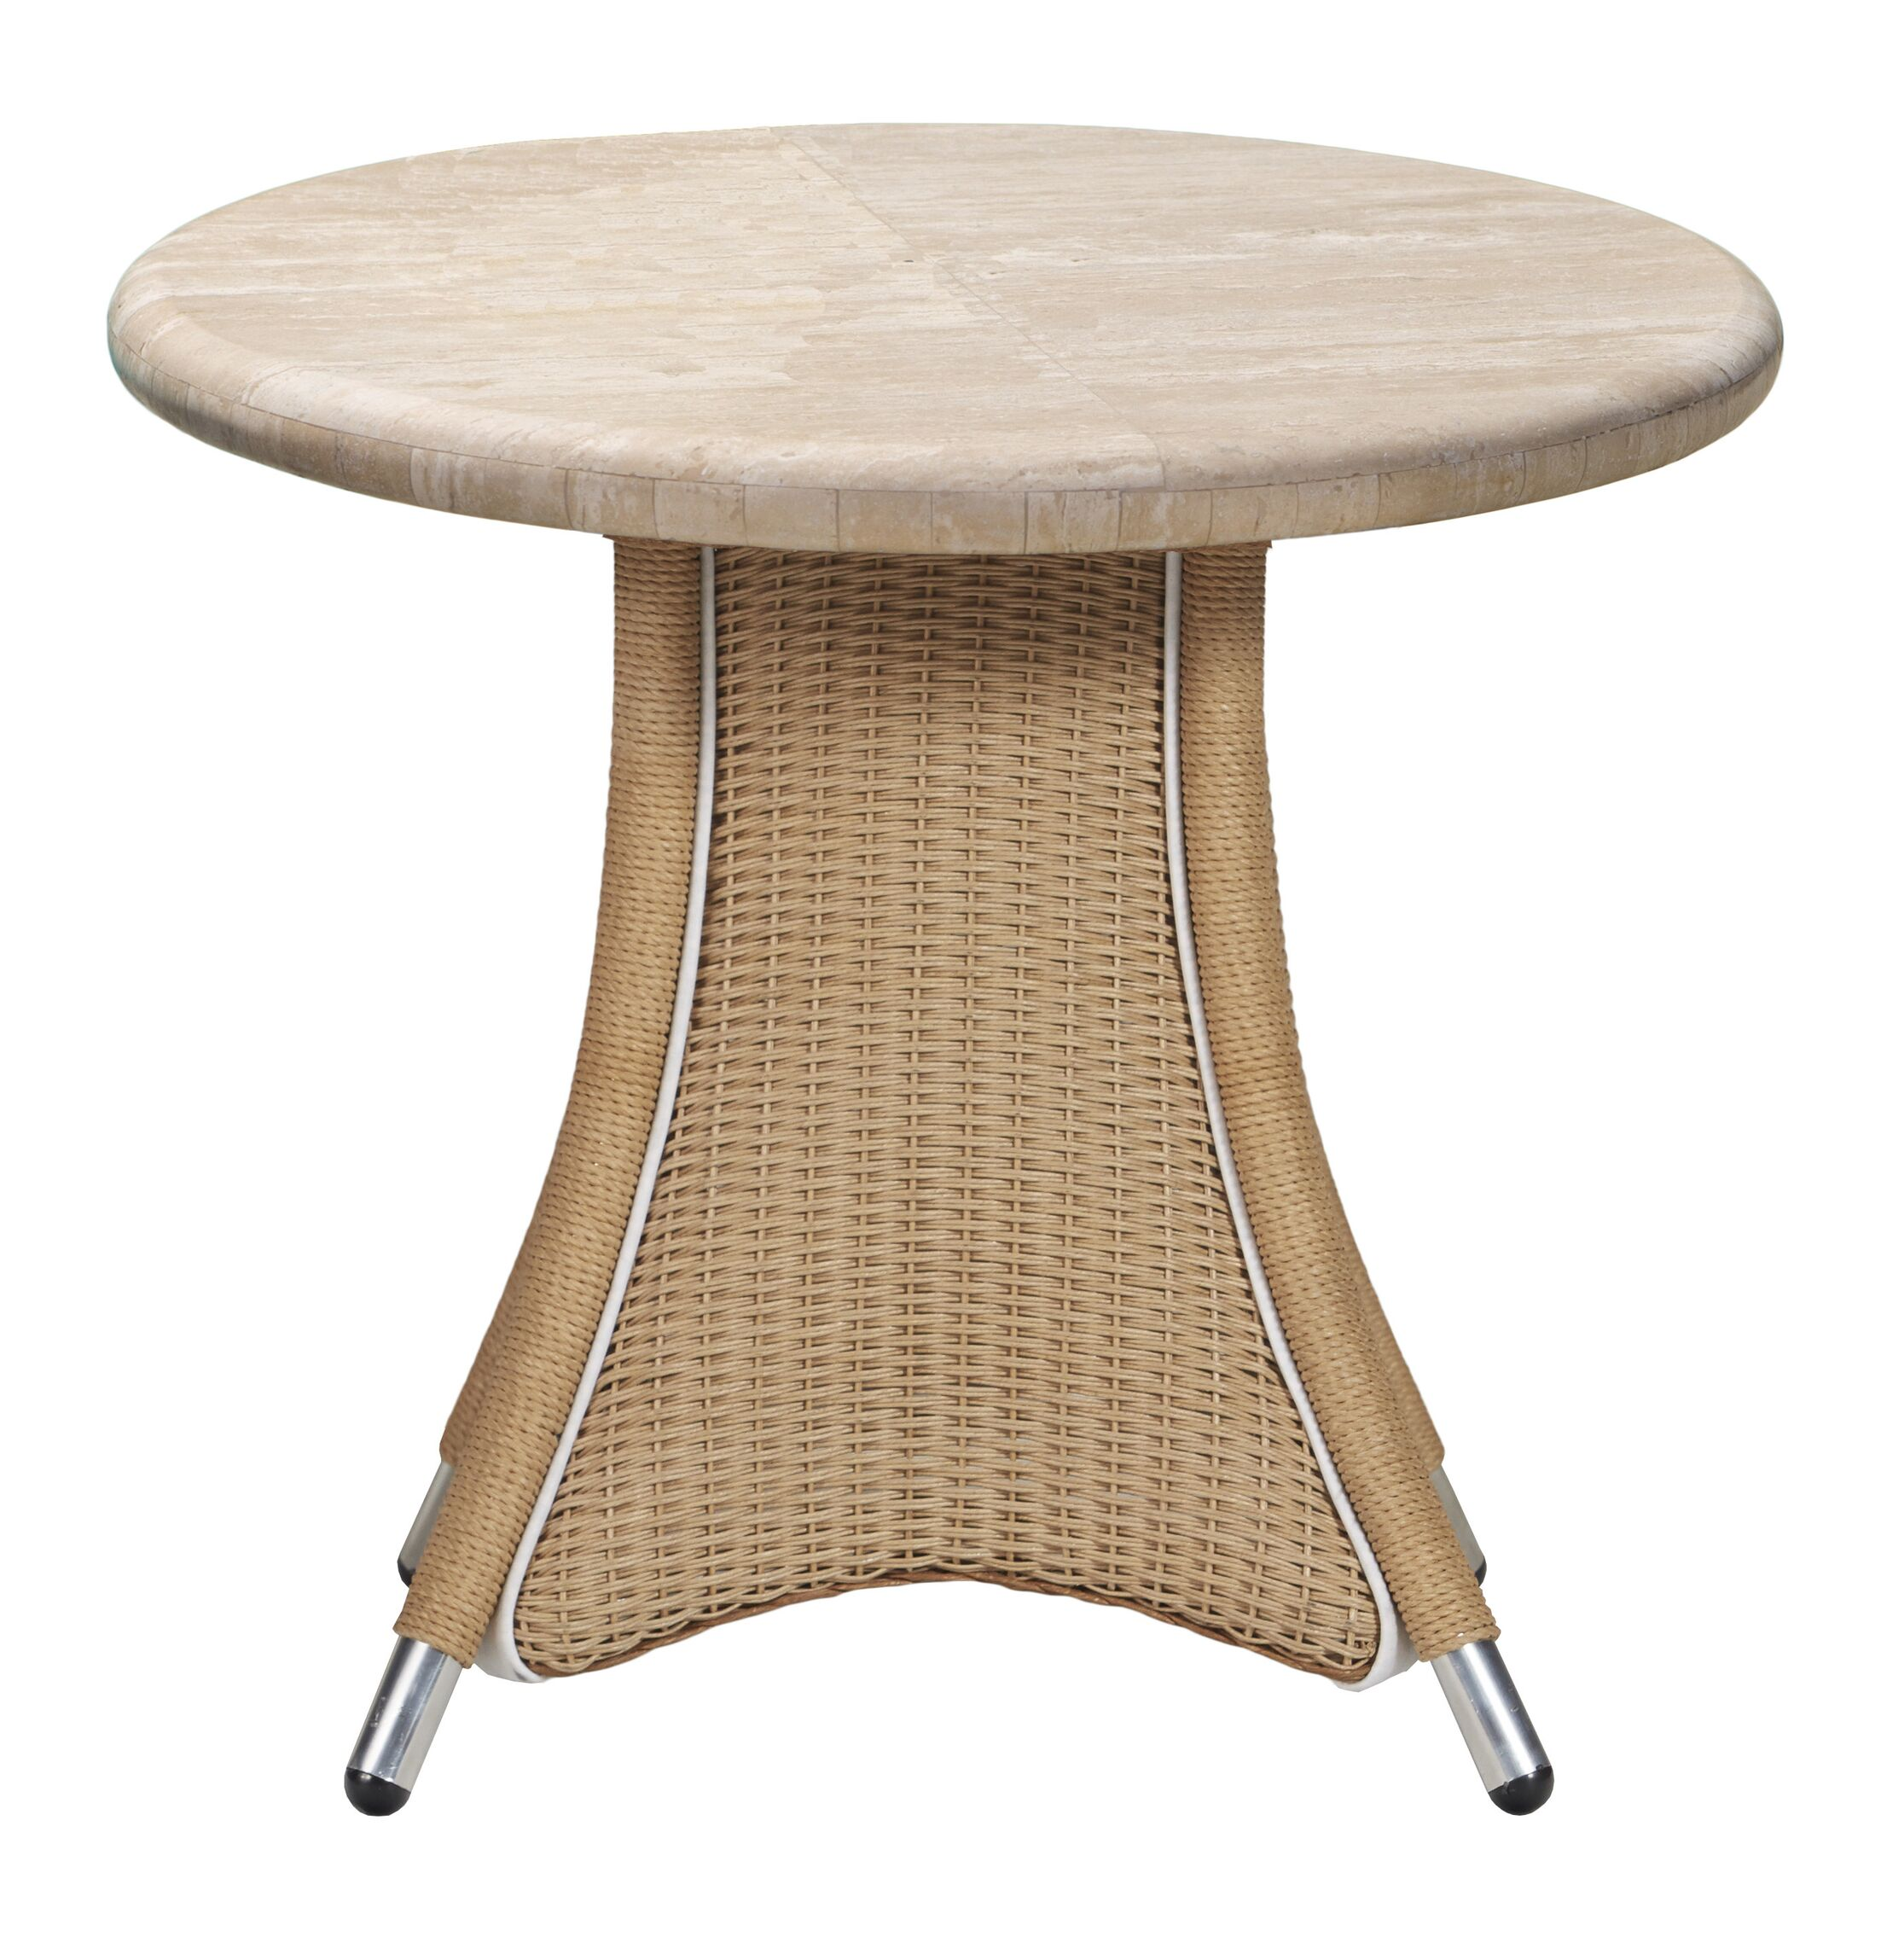 Generations Wicker Rattan Dining Table Finish: Premium Denim Blue